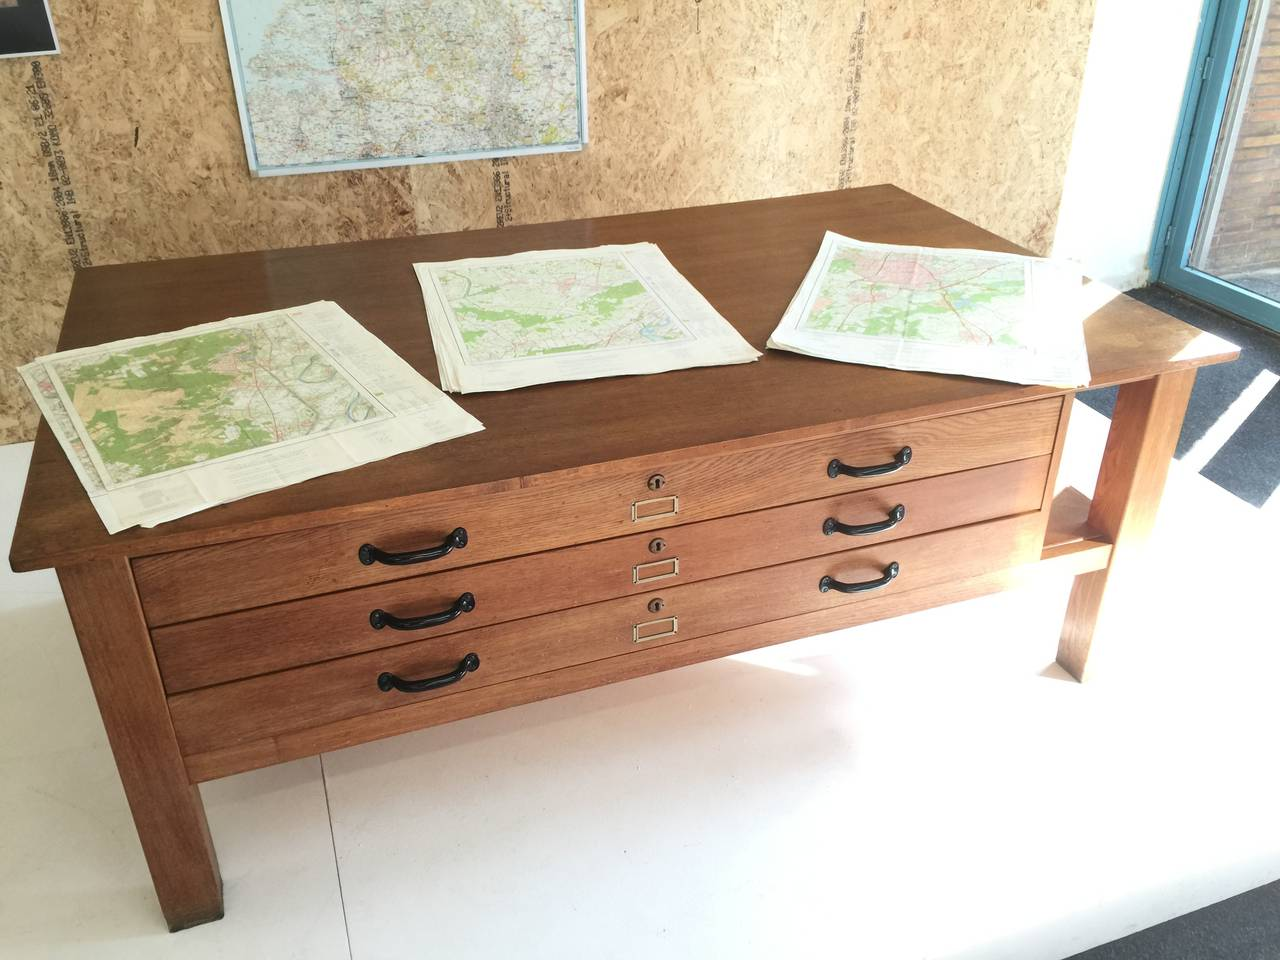 This Large Table In Oak With Three Large File/map Drawers Was Used In The